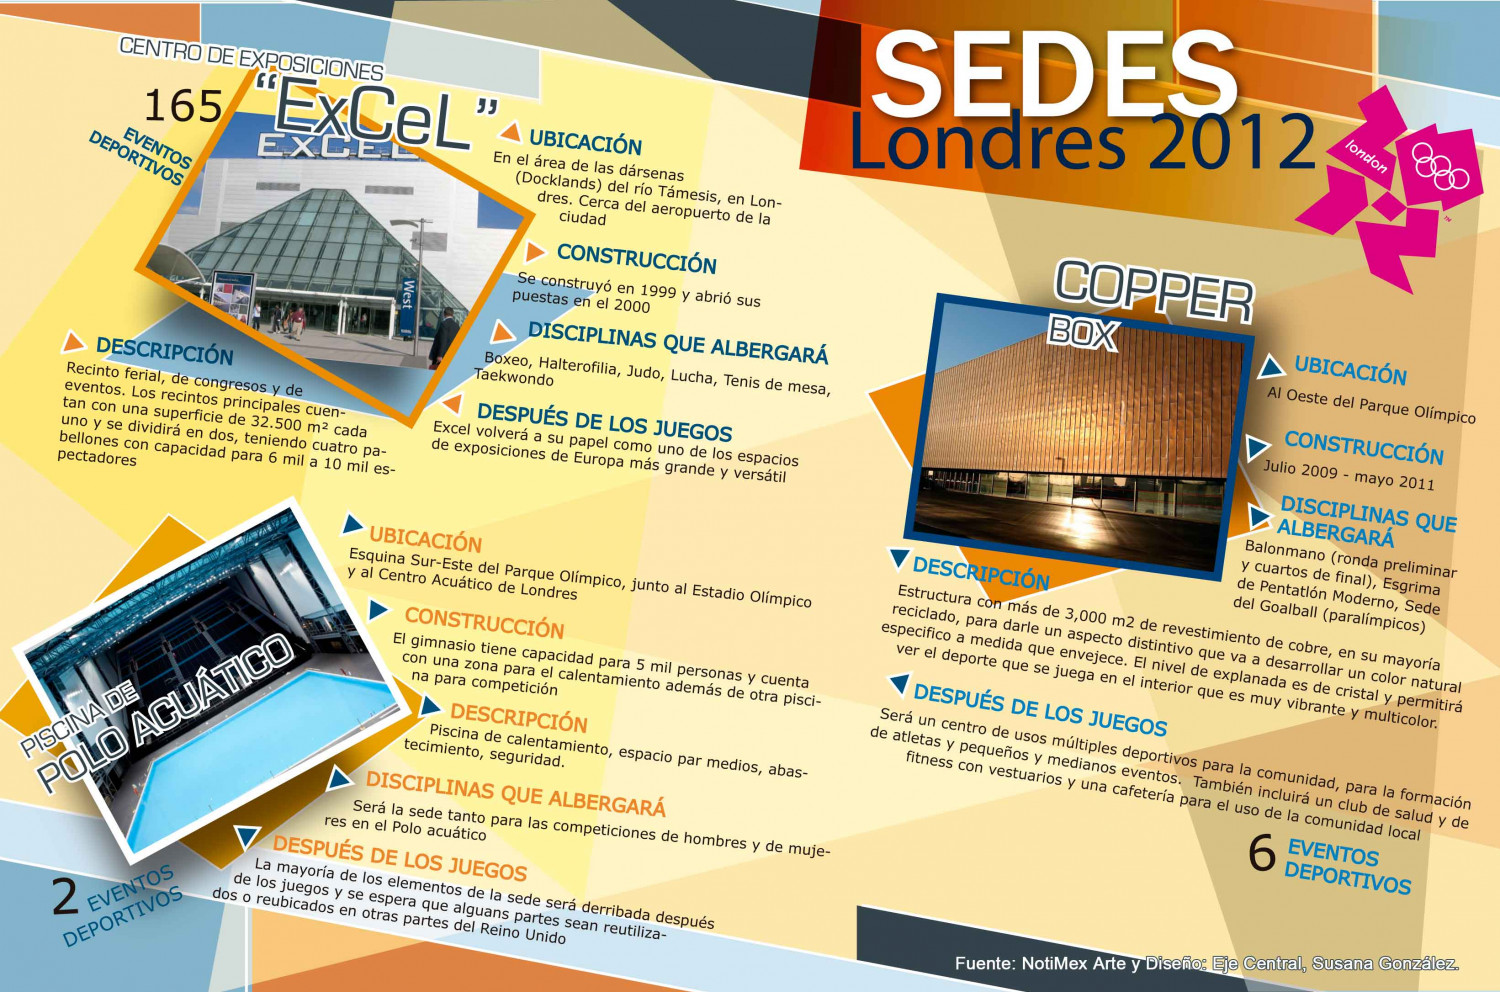 Sedes Londres 2012 -2 Infographic